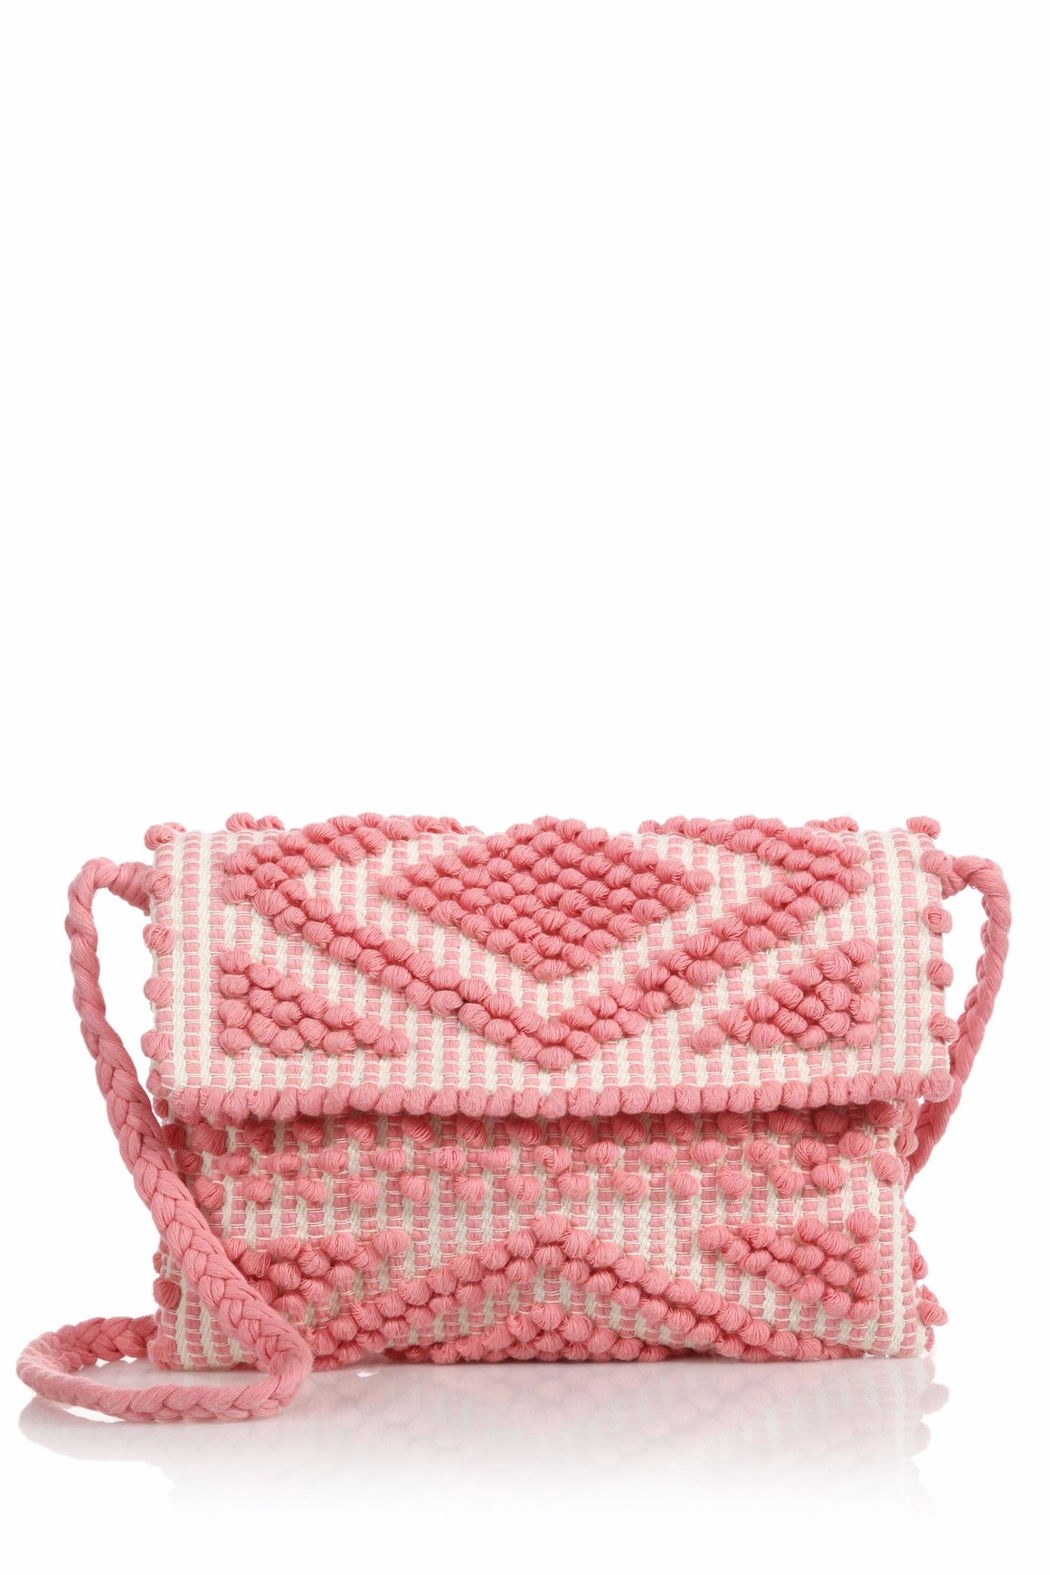 Antonello Tedde Pink Rombi Clutch Bag - Front Cropped Image